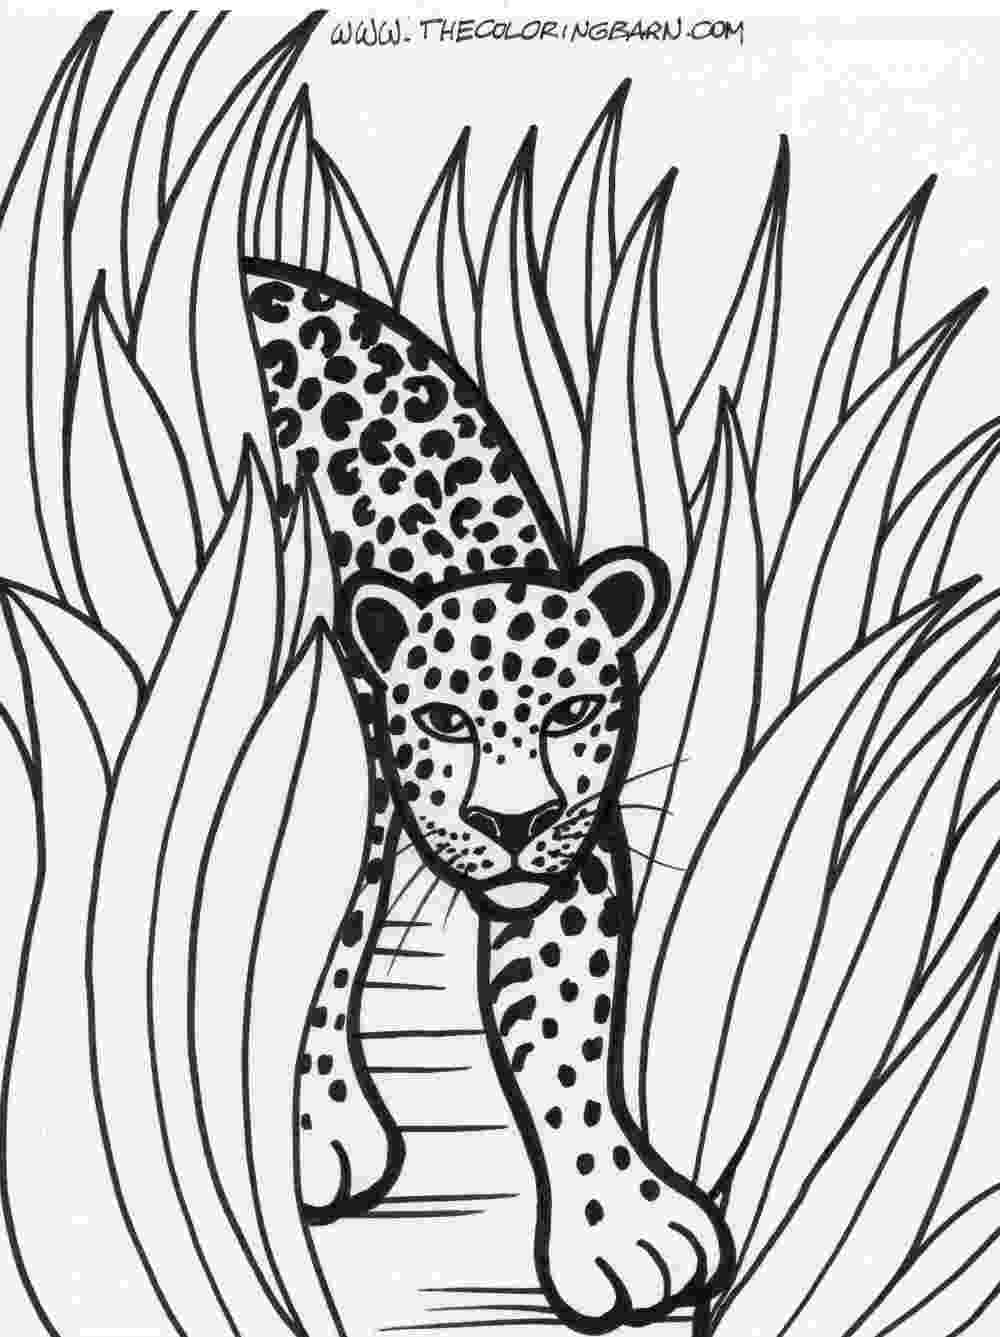 coloring pages jungle jungle coloring for adults and kids kiddycharts coloring jungle coloring pages 1 1